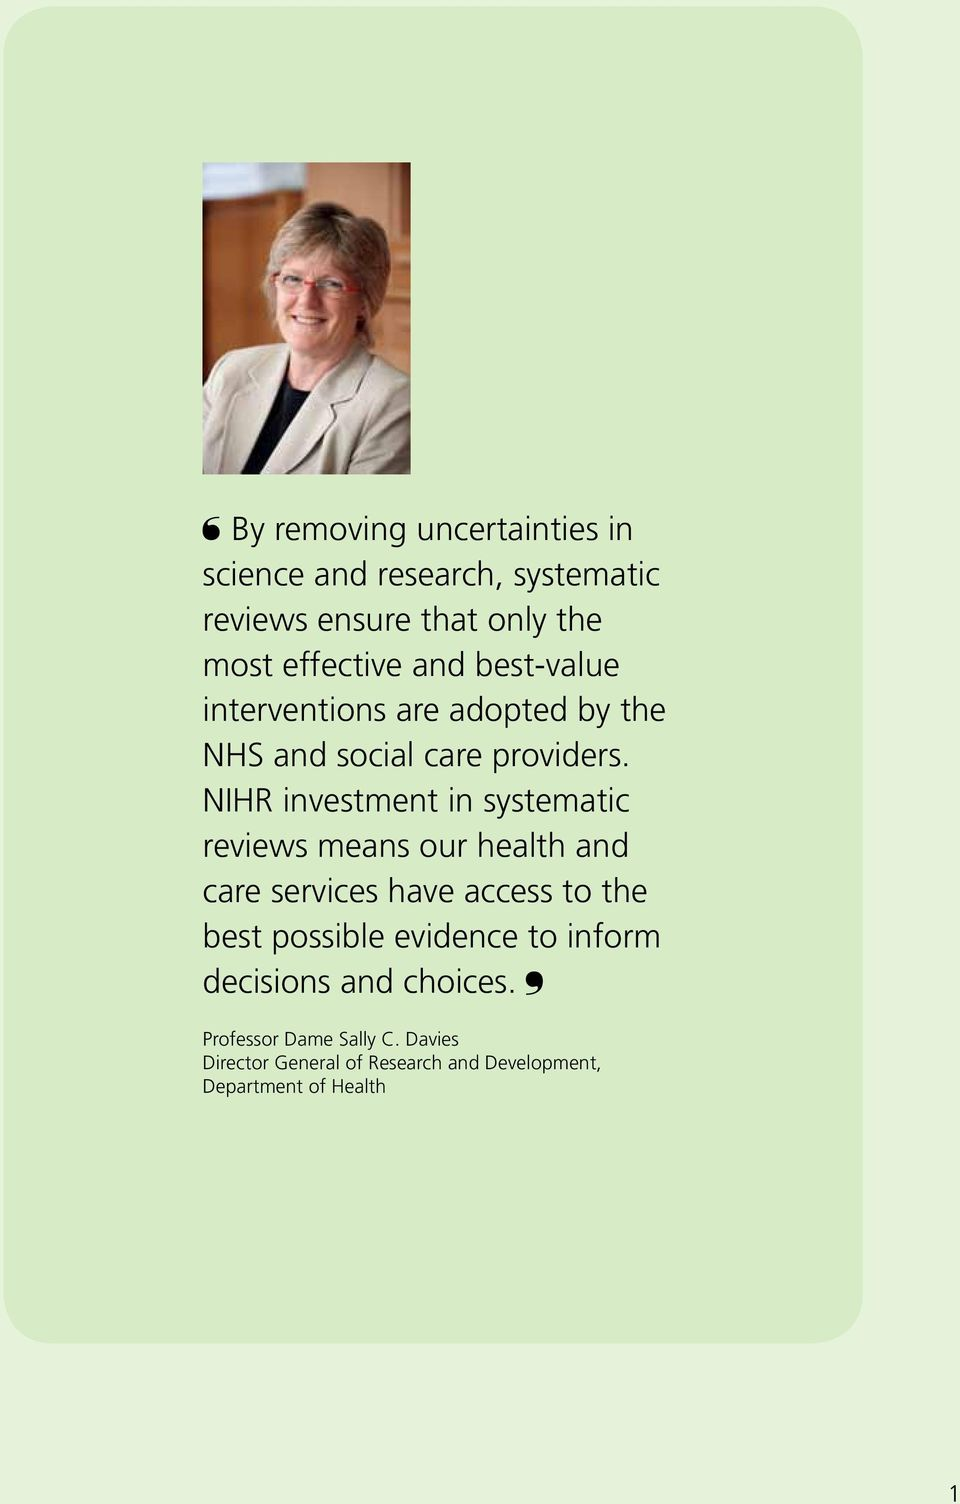 NIHR investment in systematic reviews means our health and care services have access to the best possible